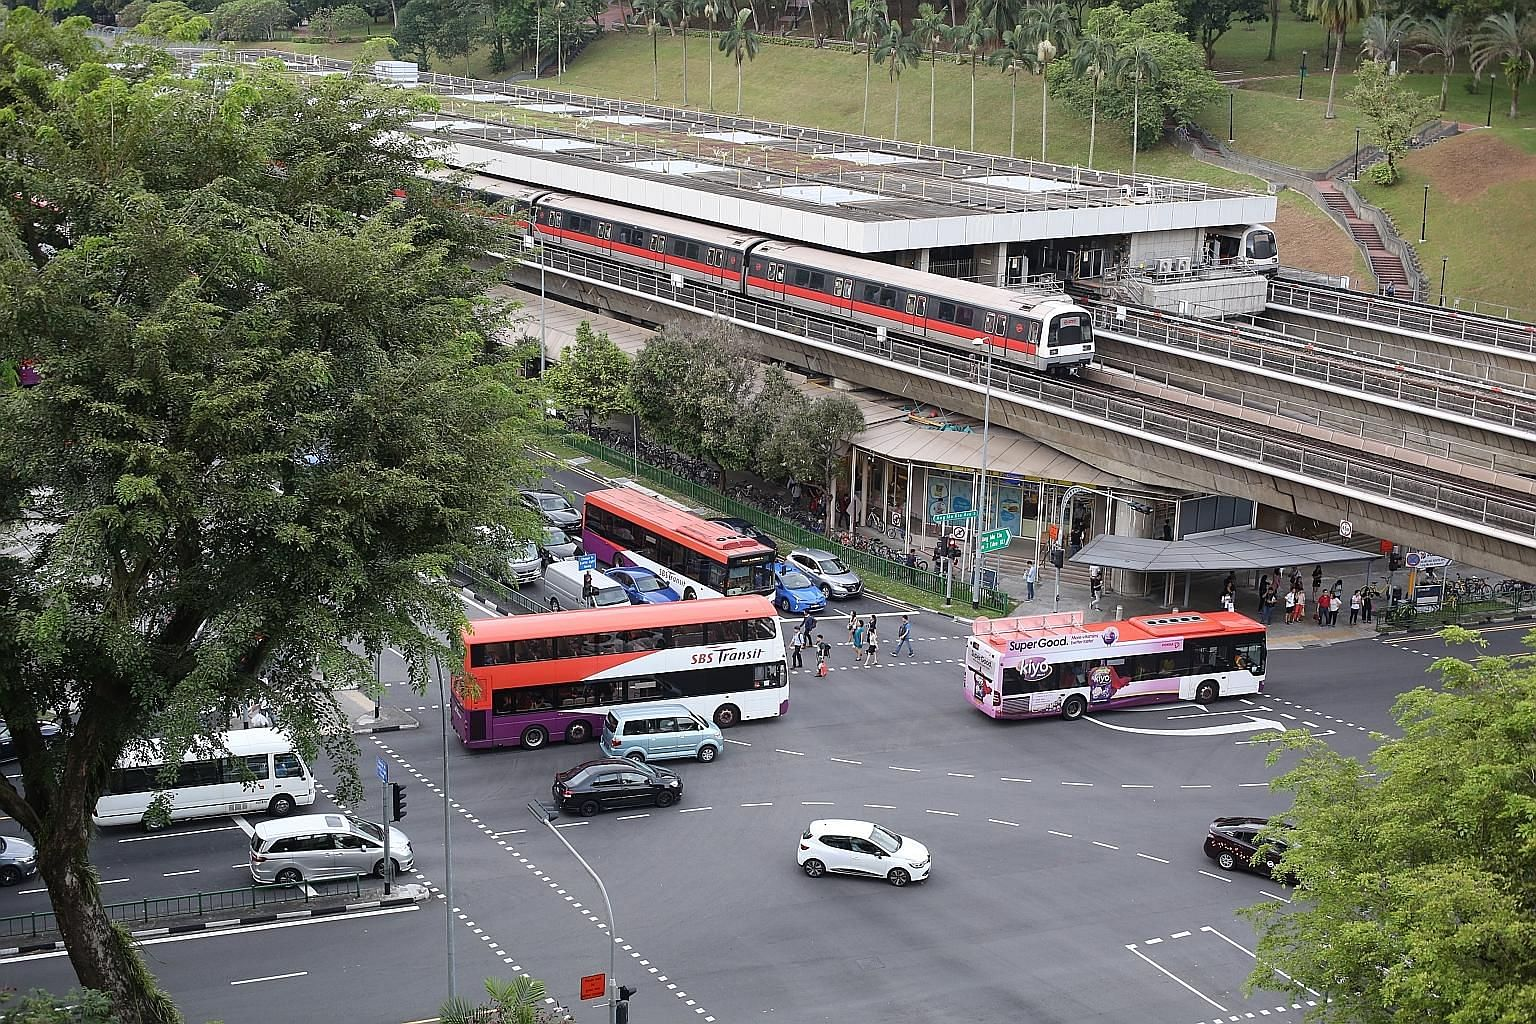 The land transport system must transform to support Singapore's growth and the evolving needs of commuters, while taking into account technological disruption, demographic changes and land constraints, said Senior Minister of State for Transport Jani